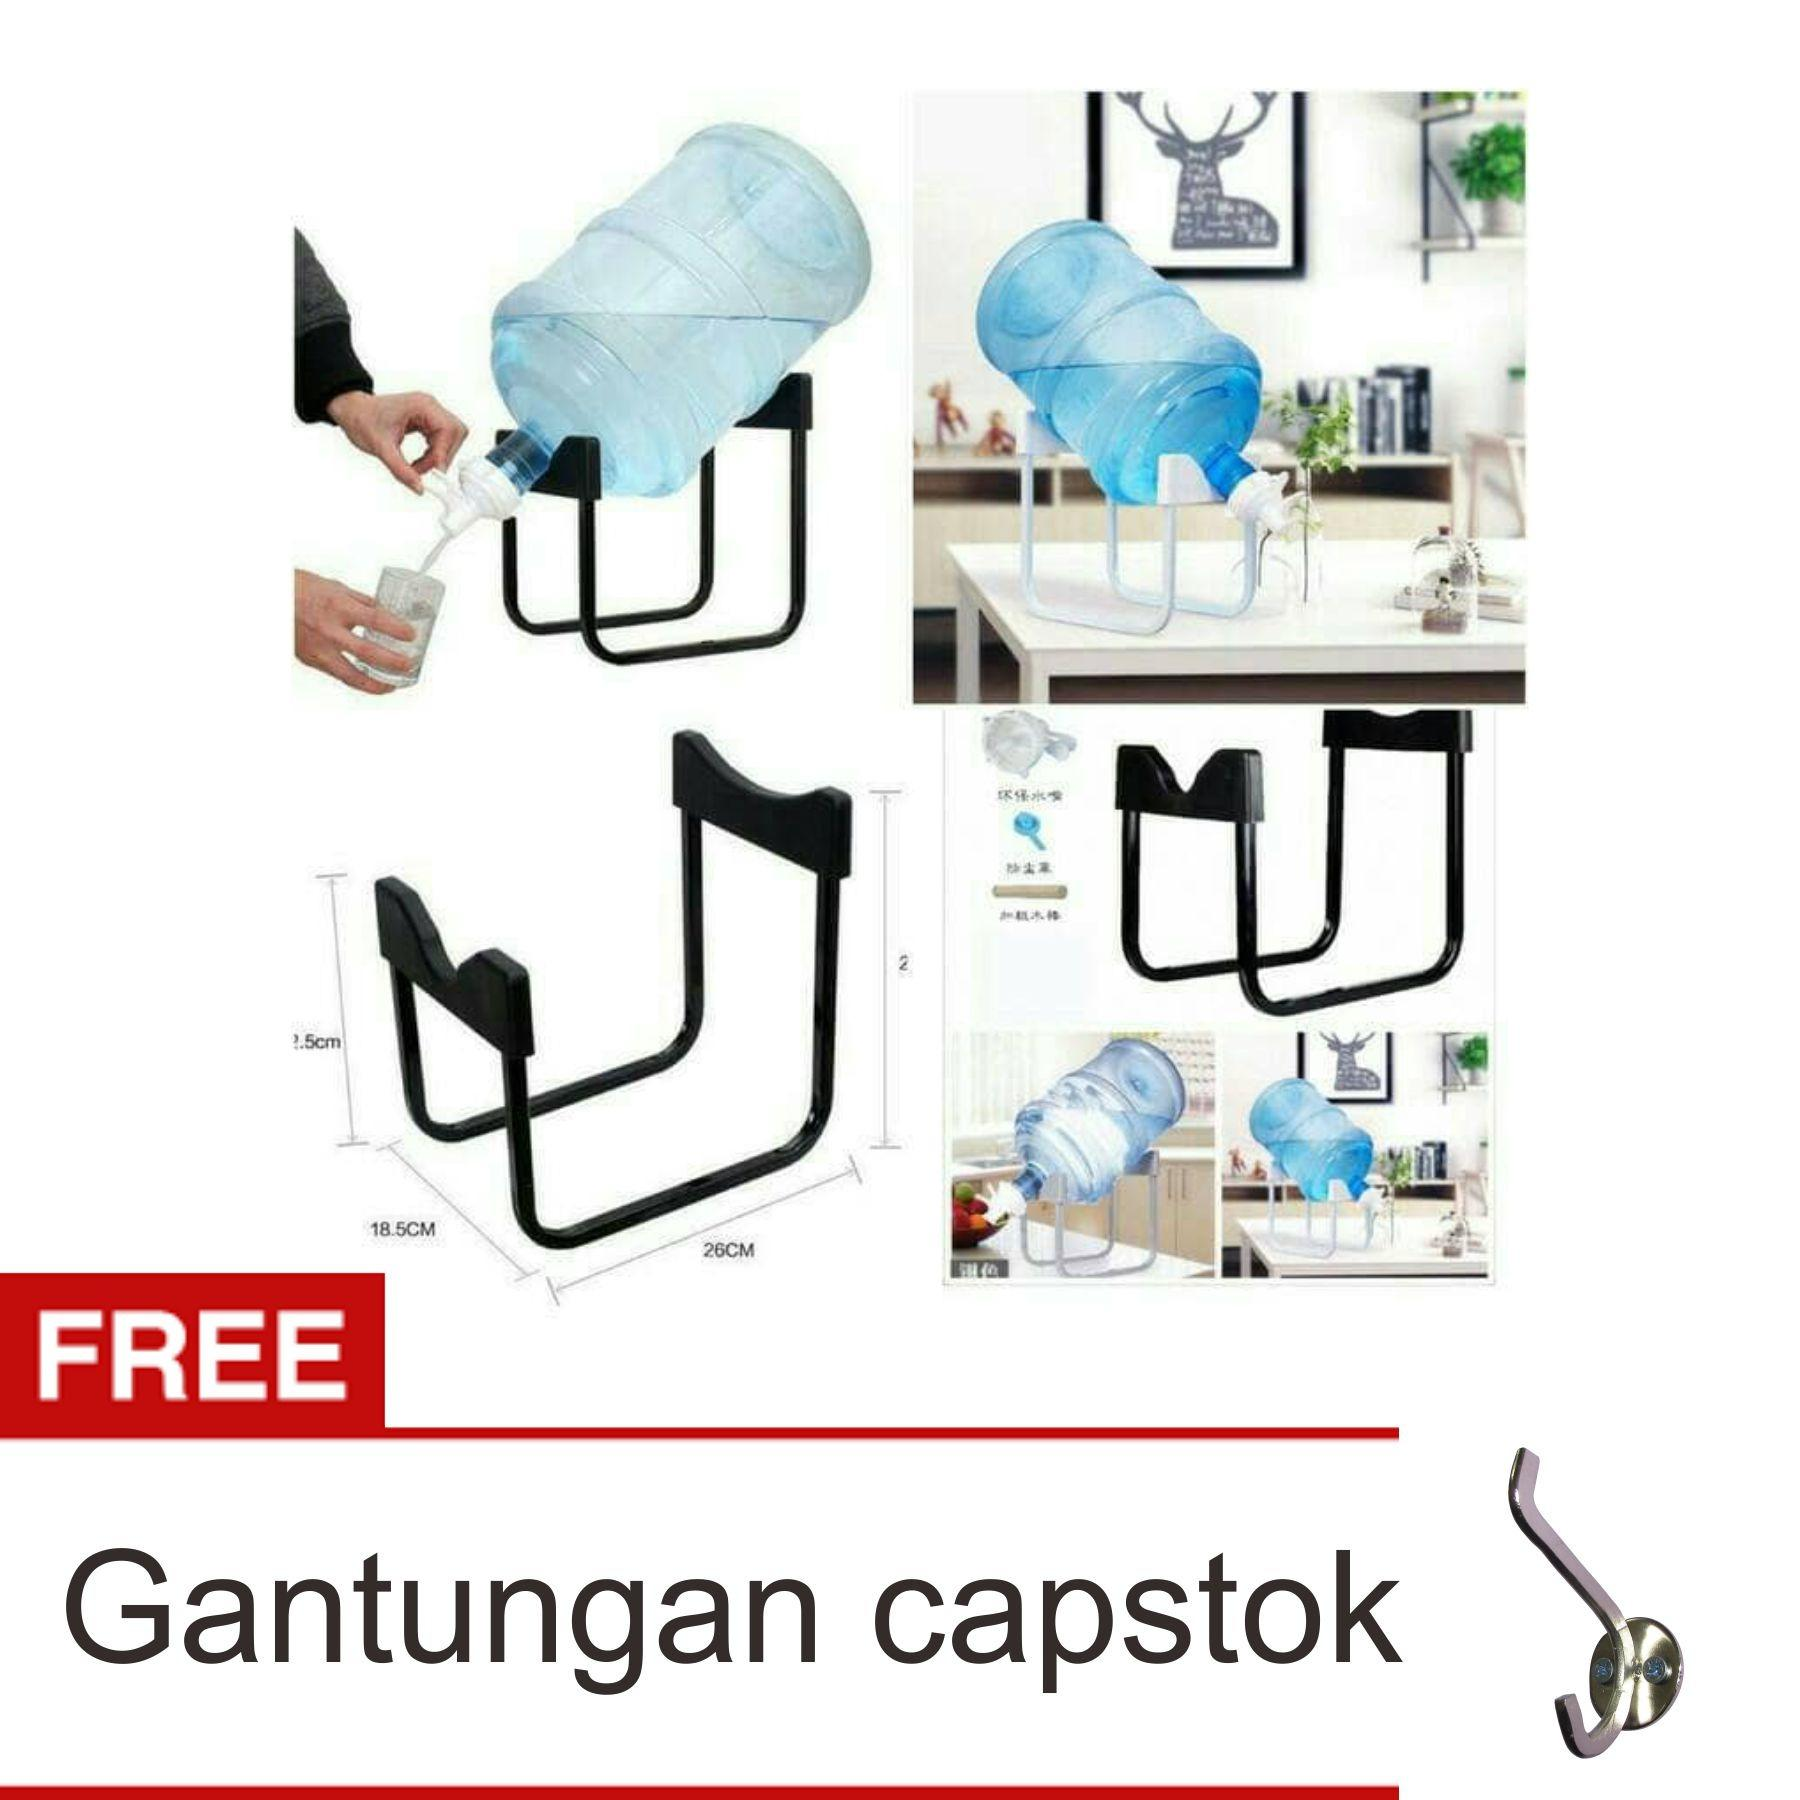 Lanjarjaya Rak Galon Tatakan Galon + Kran Air Galon / Dispenser Air Galon / Dispenser Minuman / Tatakan Aqua / Rak Besi Warna Random + Gantungan Capstok